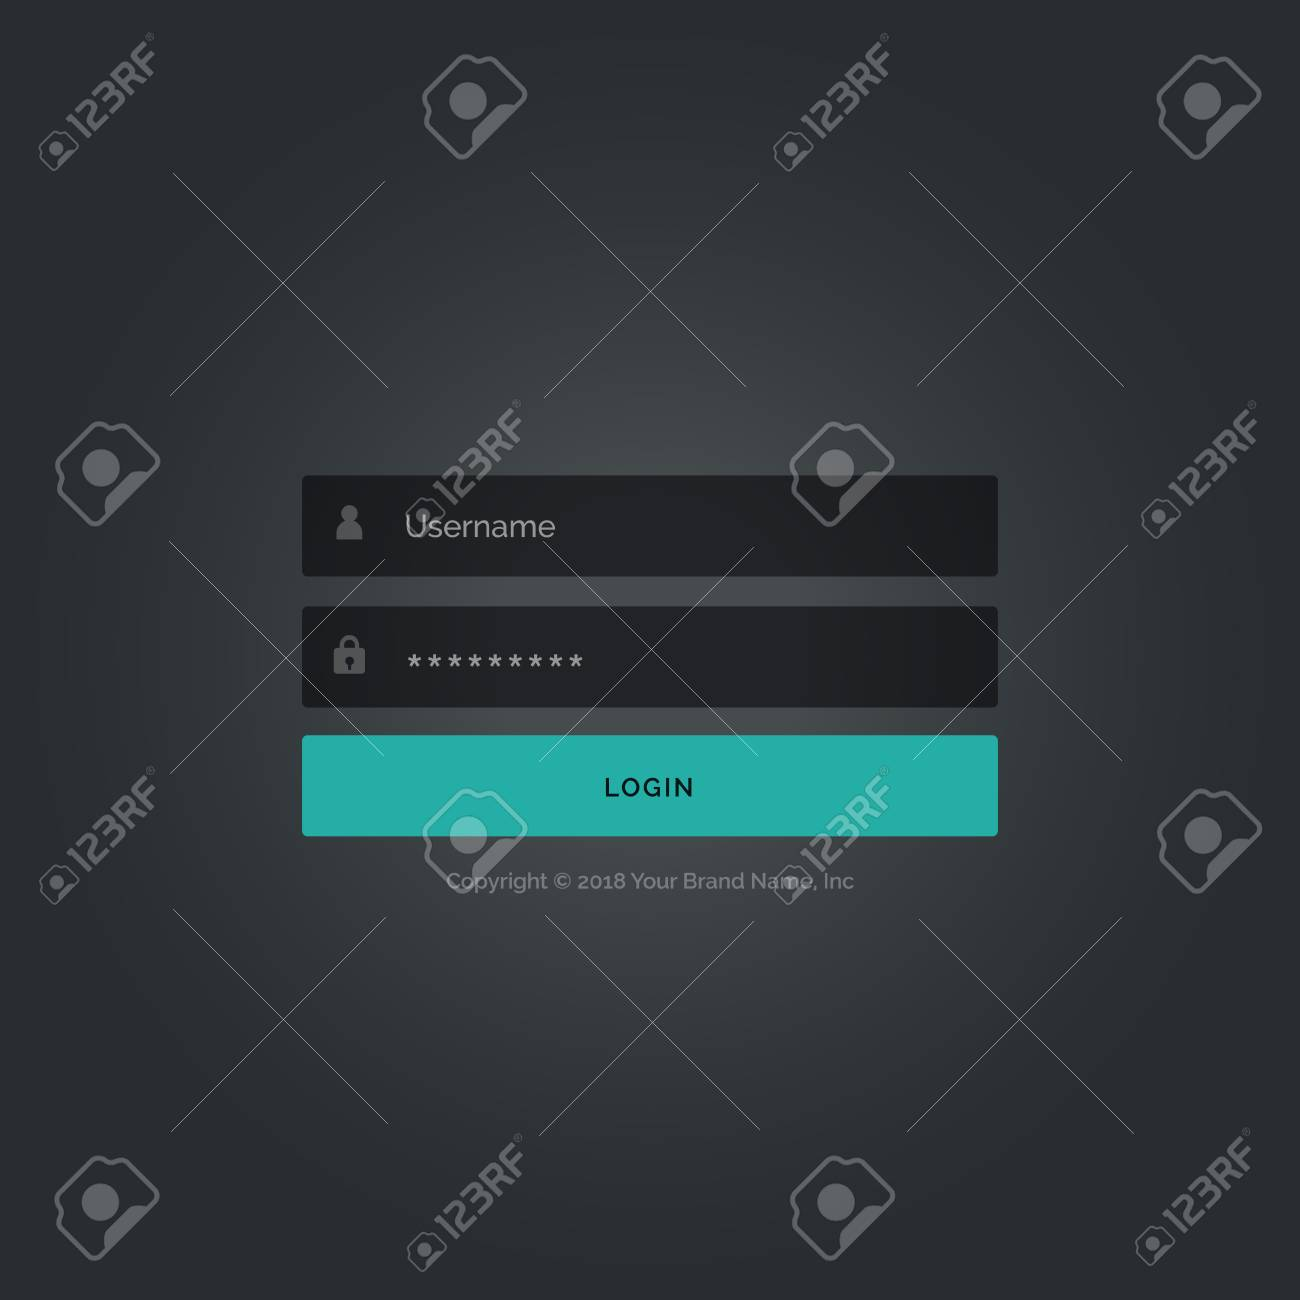 dark login form template design with username and password details